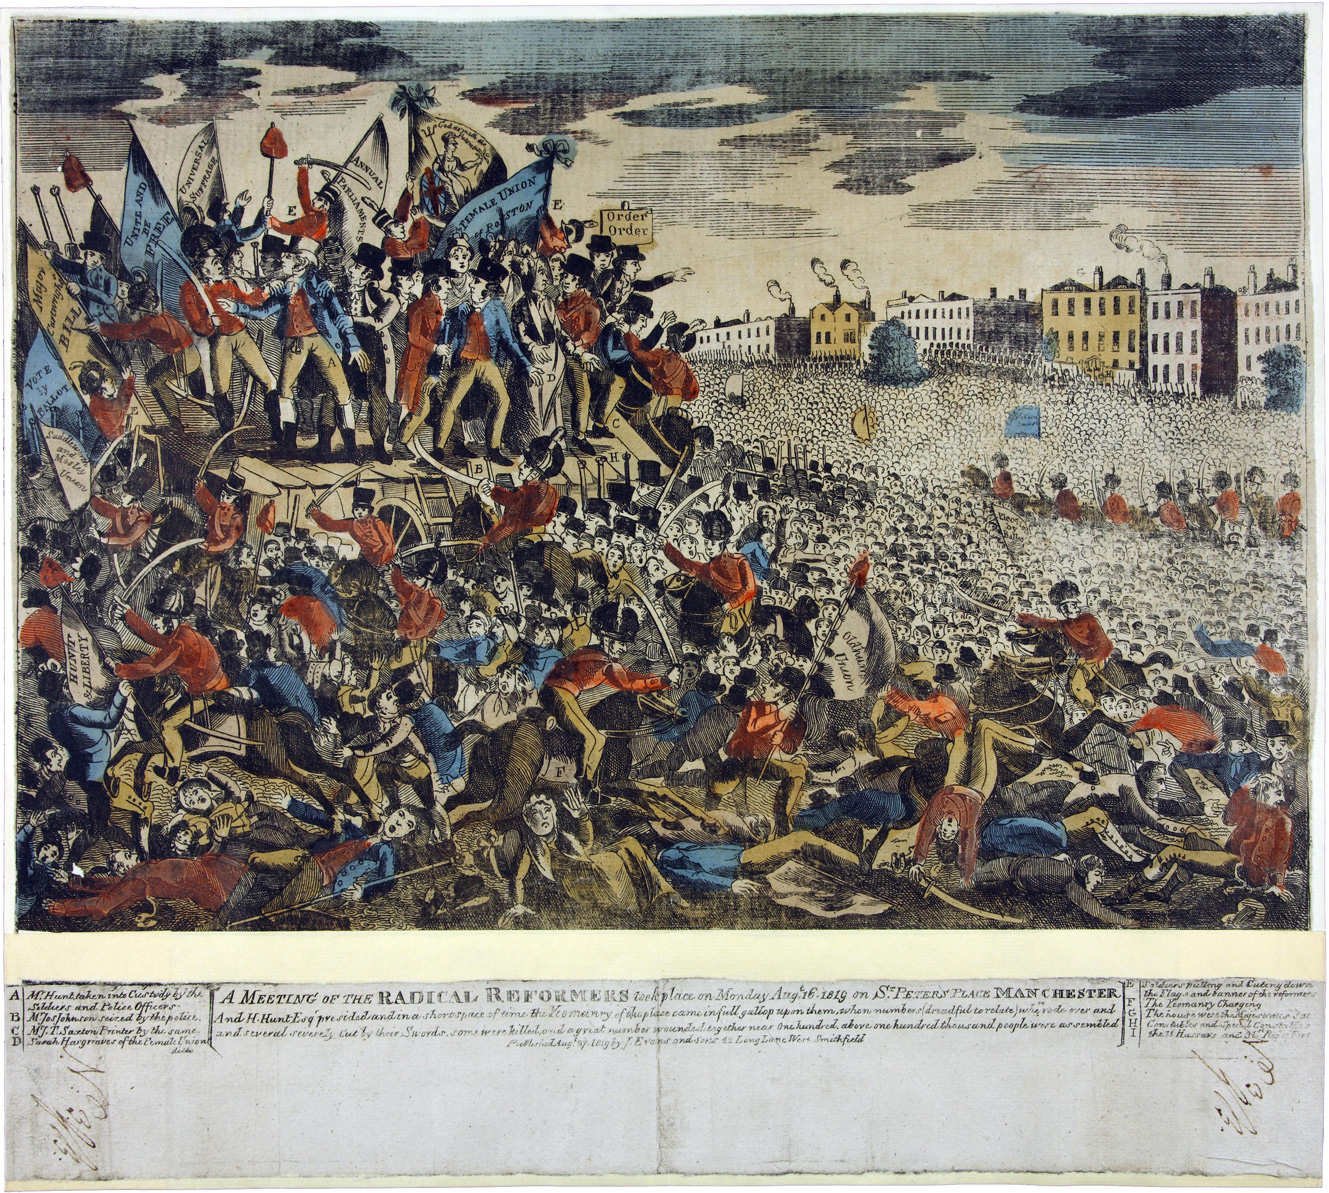 MPI1/134/16 Peterloo 1819